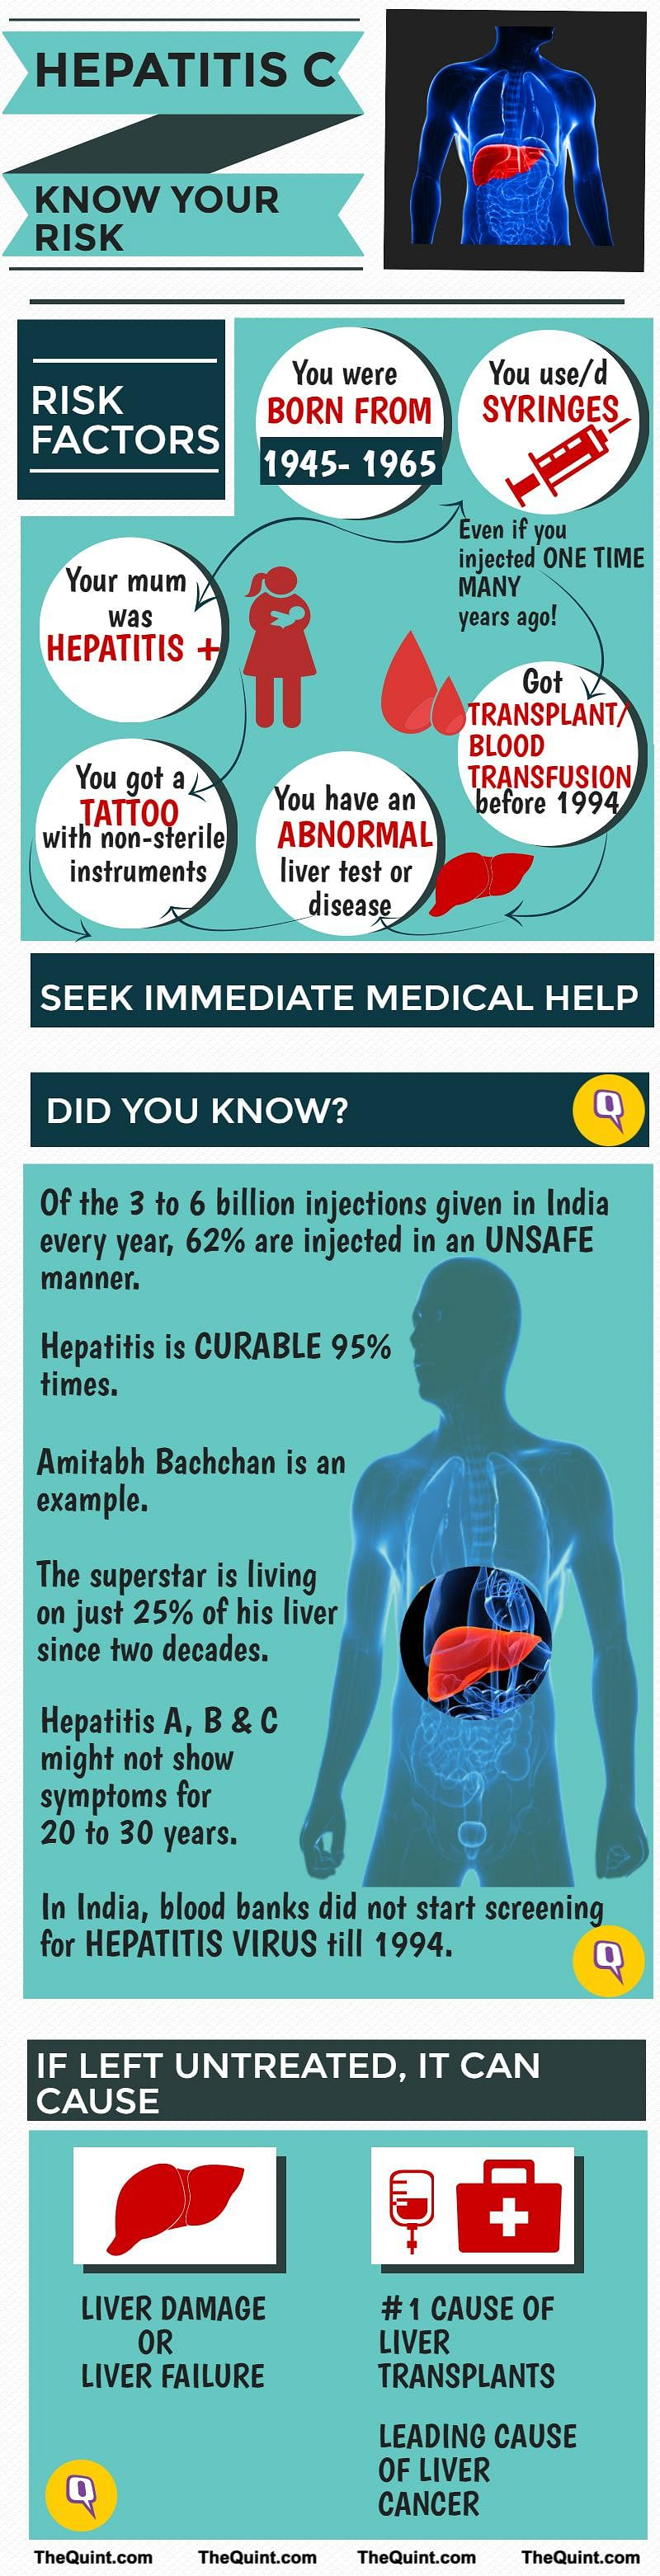 World Hepatitis Day: All You Need to Know About the Silent Killer